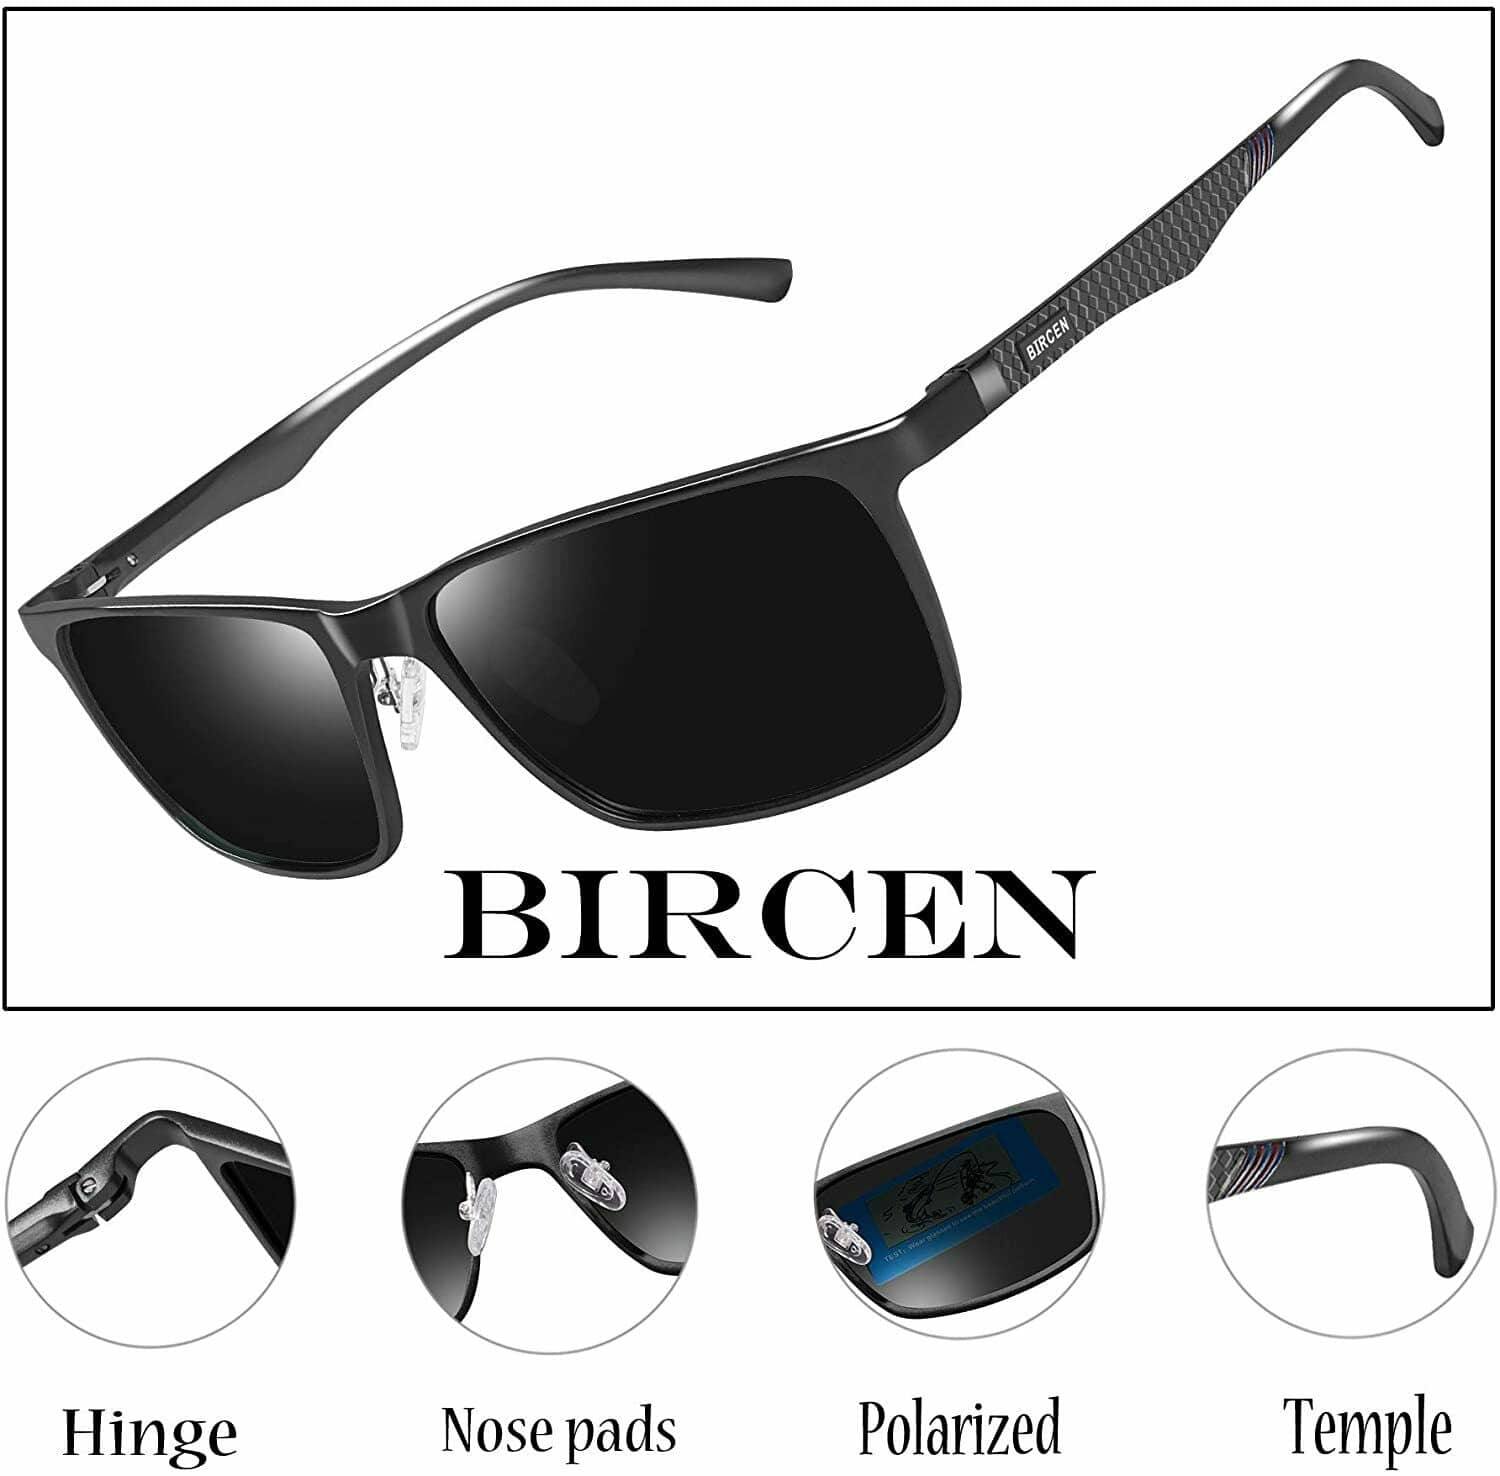 Bircen Mens Polarized Driving Sunglasses 50% off with coupon. $12.50 end price